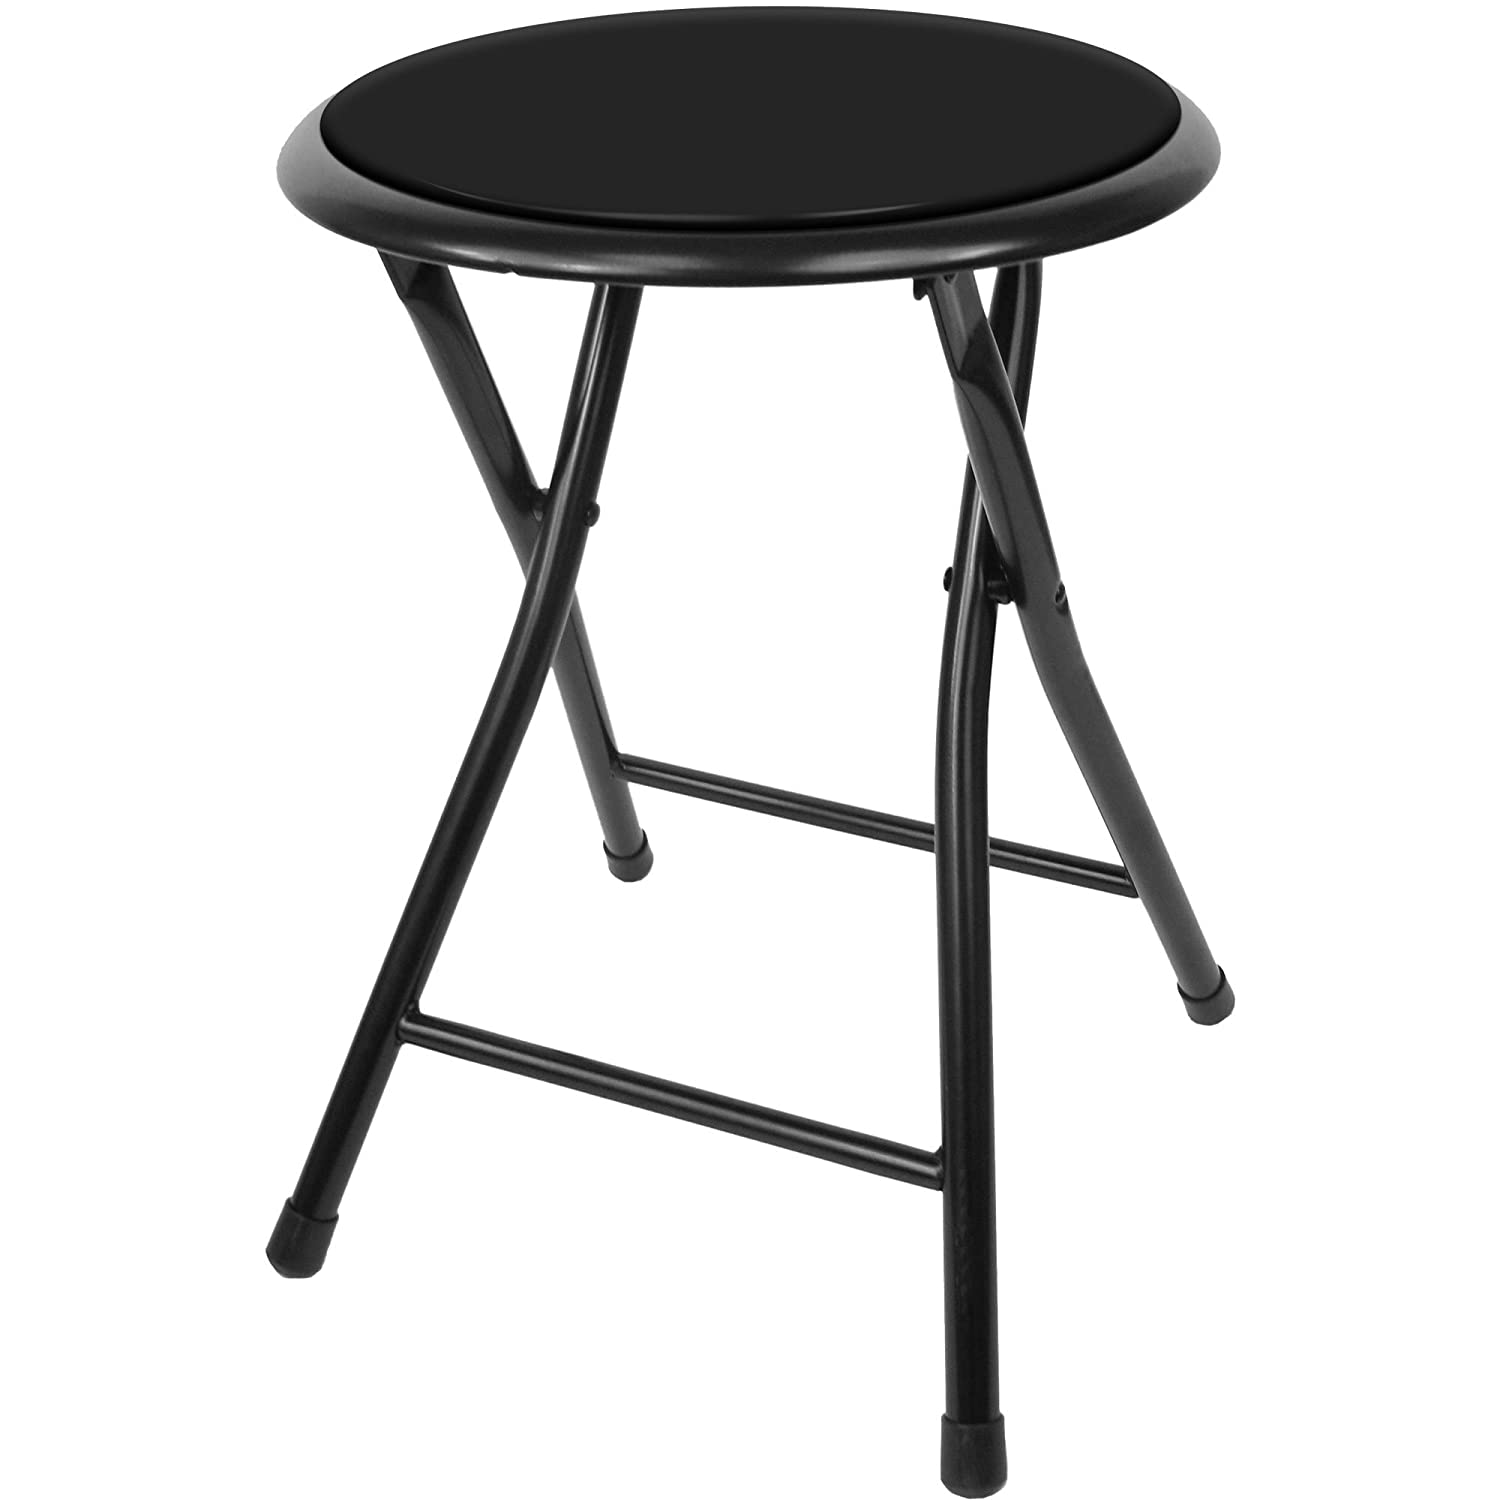 Black cushioned folding stool only amazon deals - Amazon bedroom chairs and stools ...